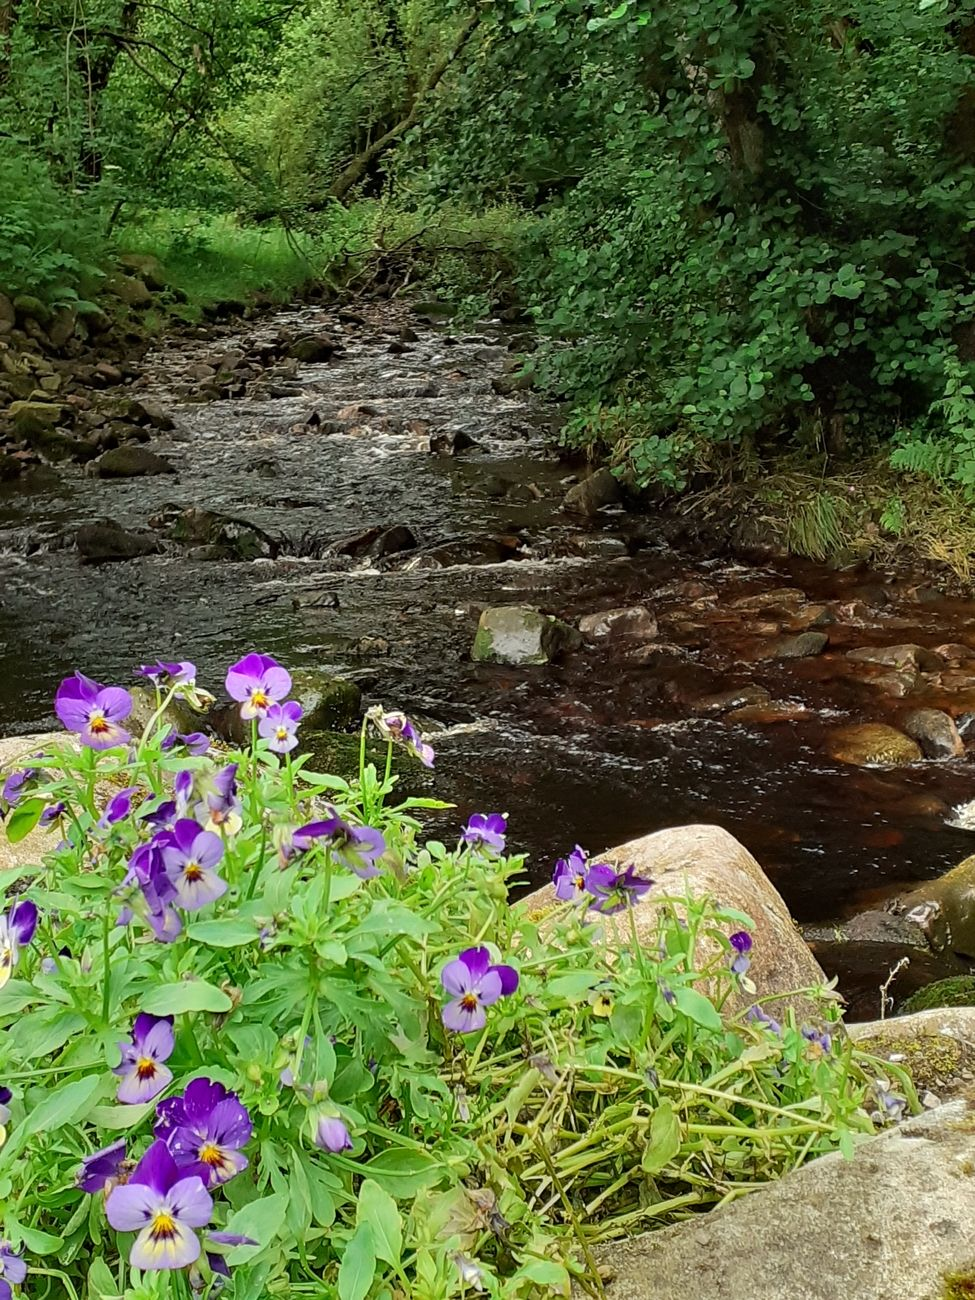 The flower's view of the flowing water.